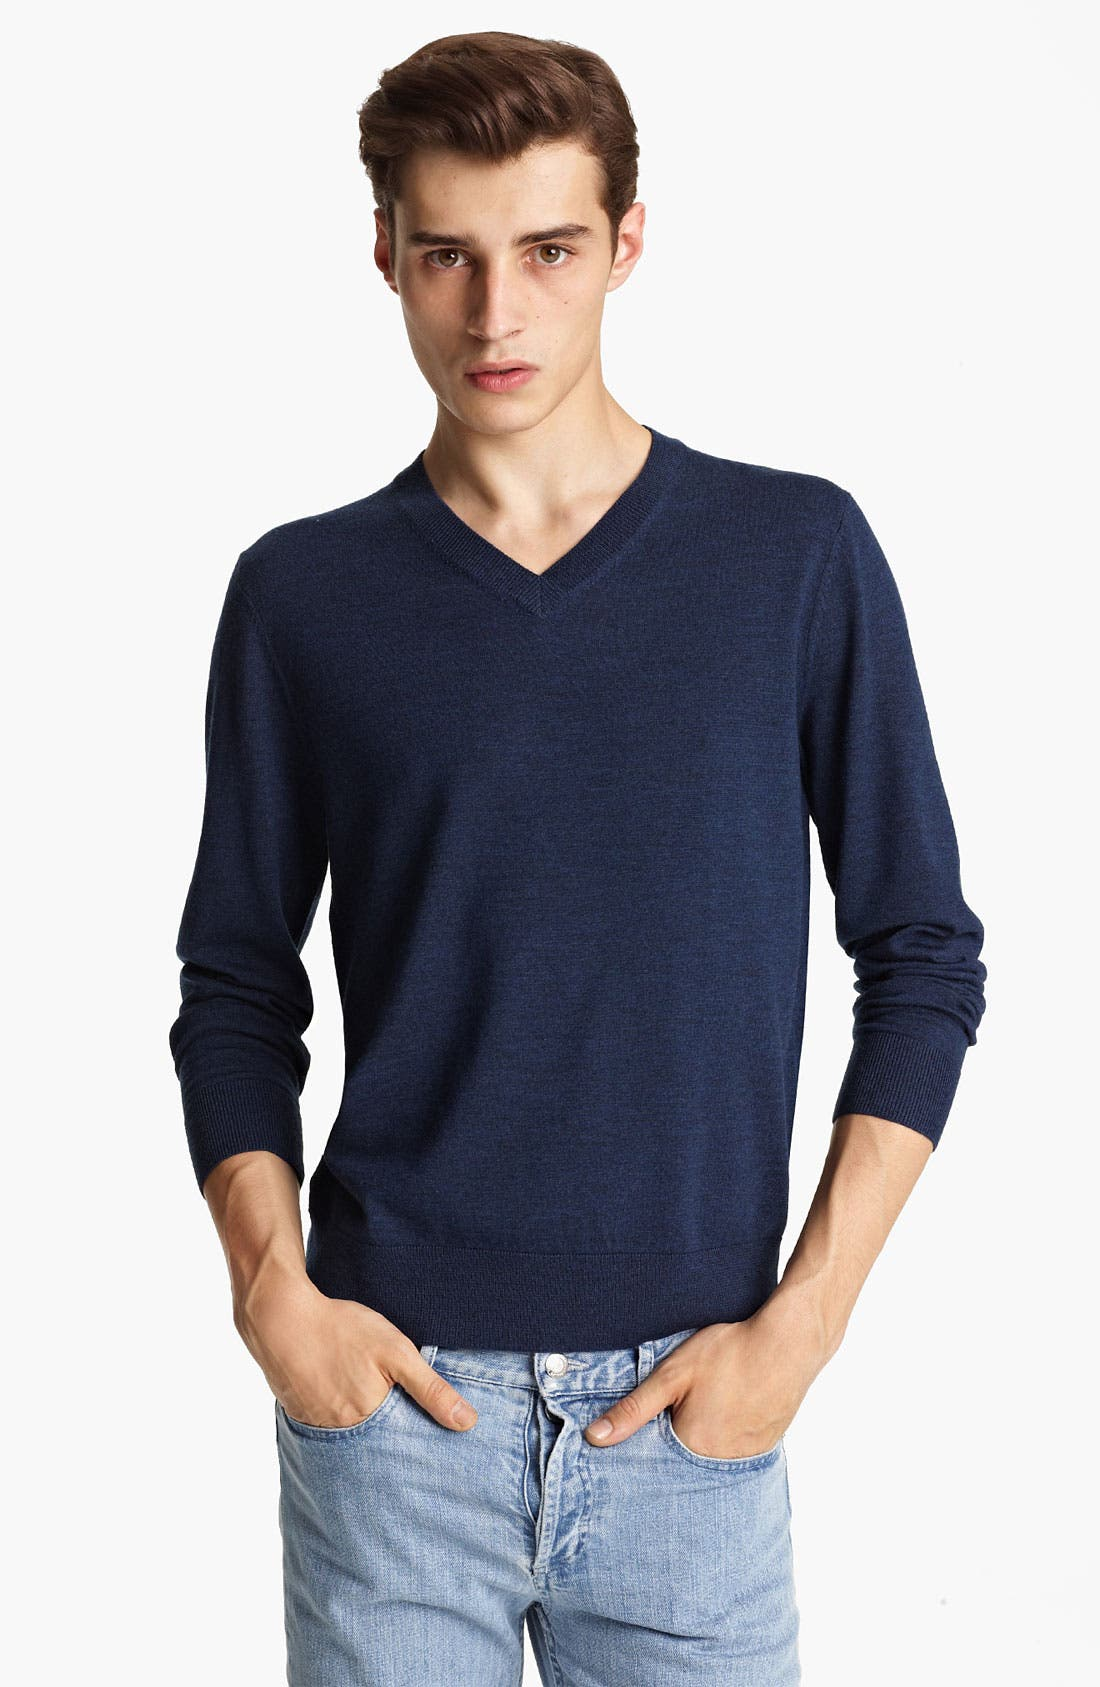 Alternate Image 1 Selected - A.P.C. V-Neck Wool Sweater